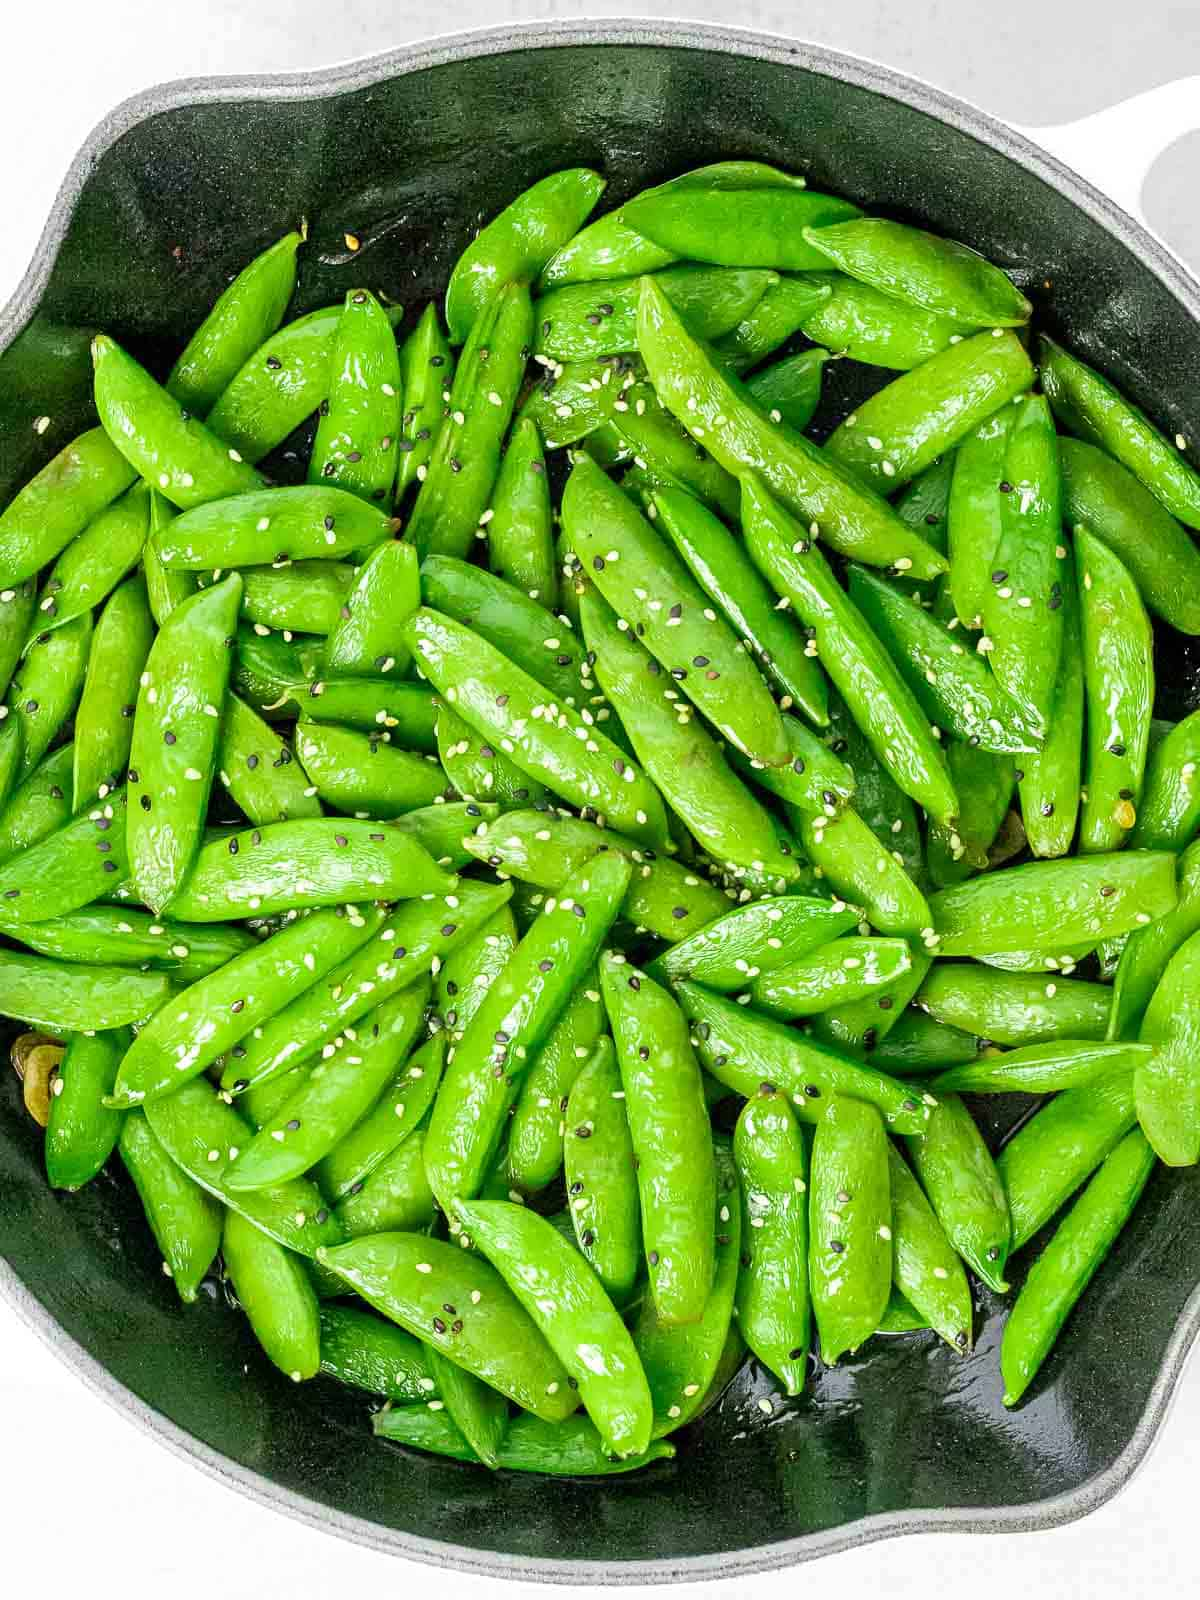 Asian style sugar snap peas with garlic and black and white sesame seeds in a dark pan.